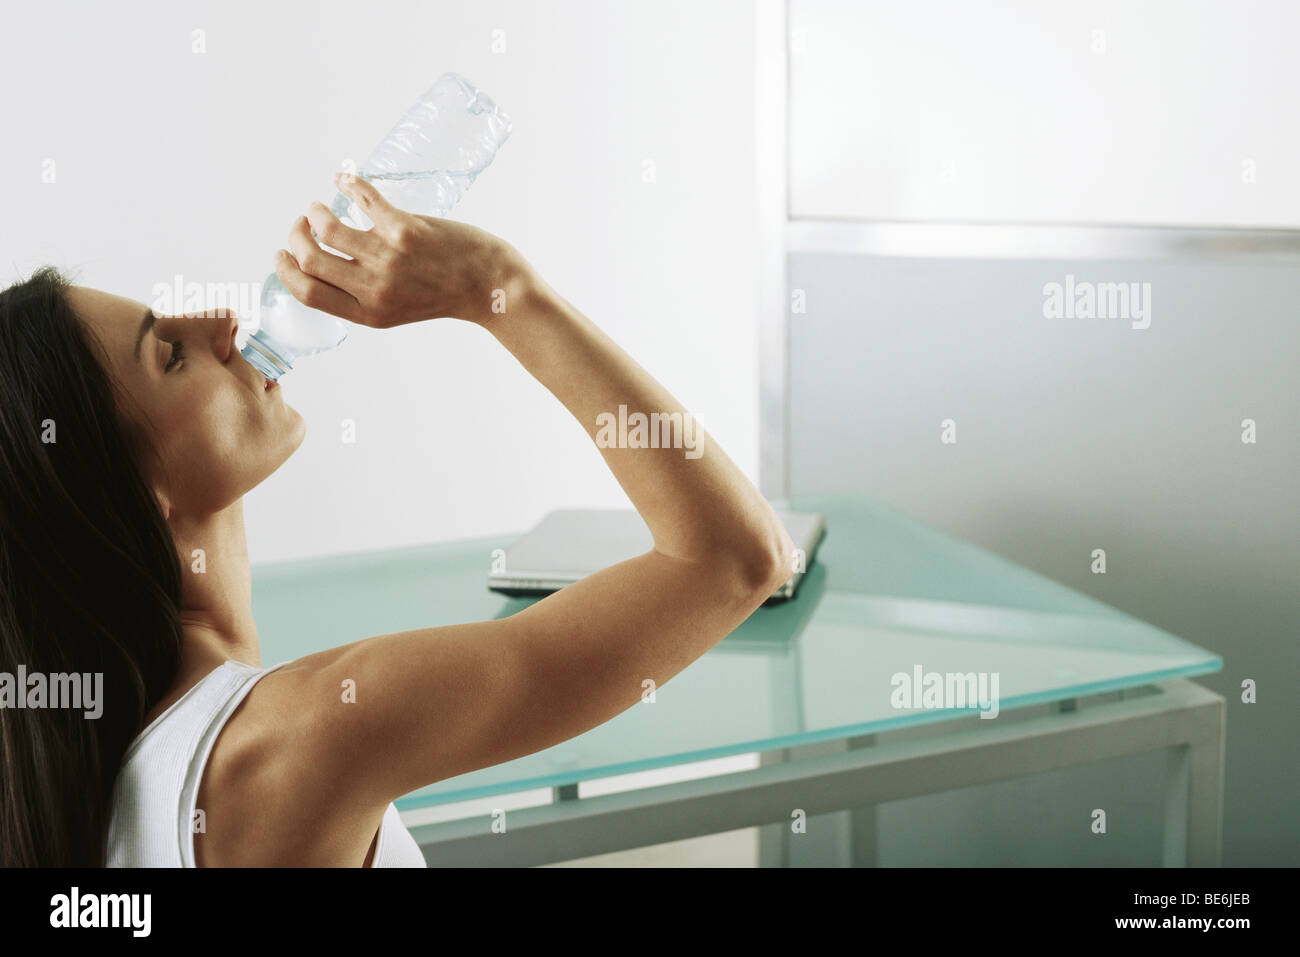 Woman quenching thirst - Stock Image